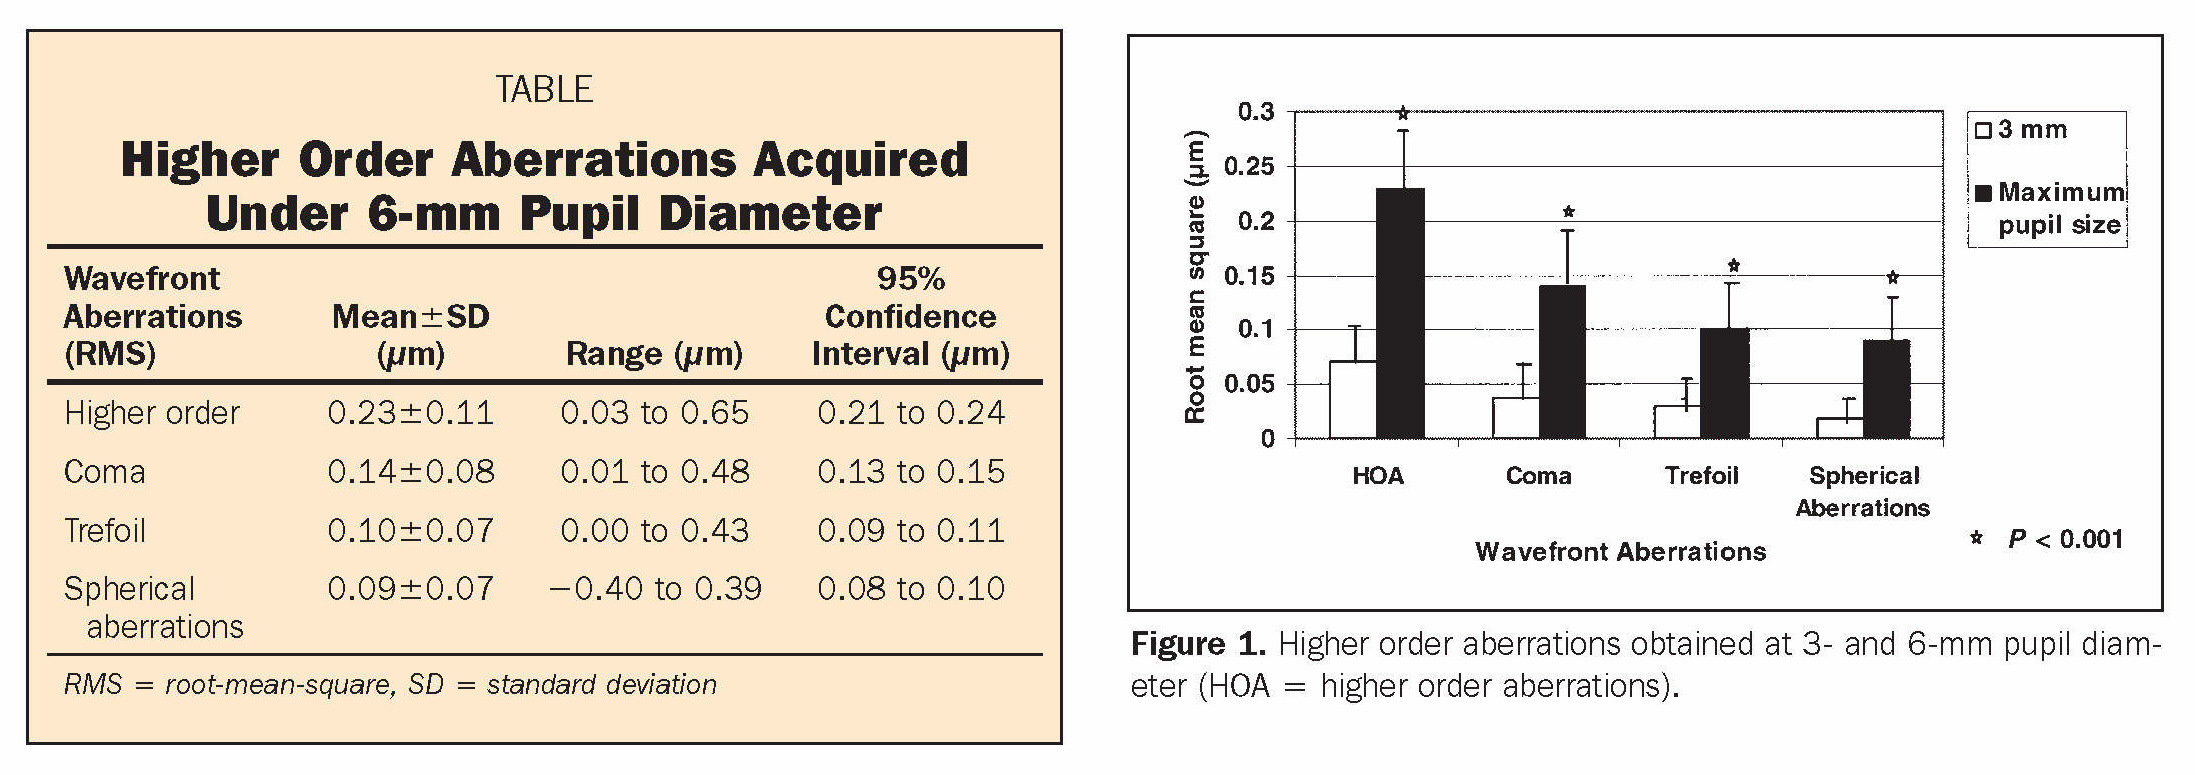 TABLEHigher Order Aberrations Acquired Under 6-mm Pupil DiameterFigure 1. Higher order aberrations obtained at 3- and 6-mm pupil diameter (HOA = higher order aberrations).